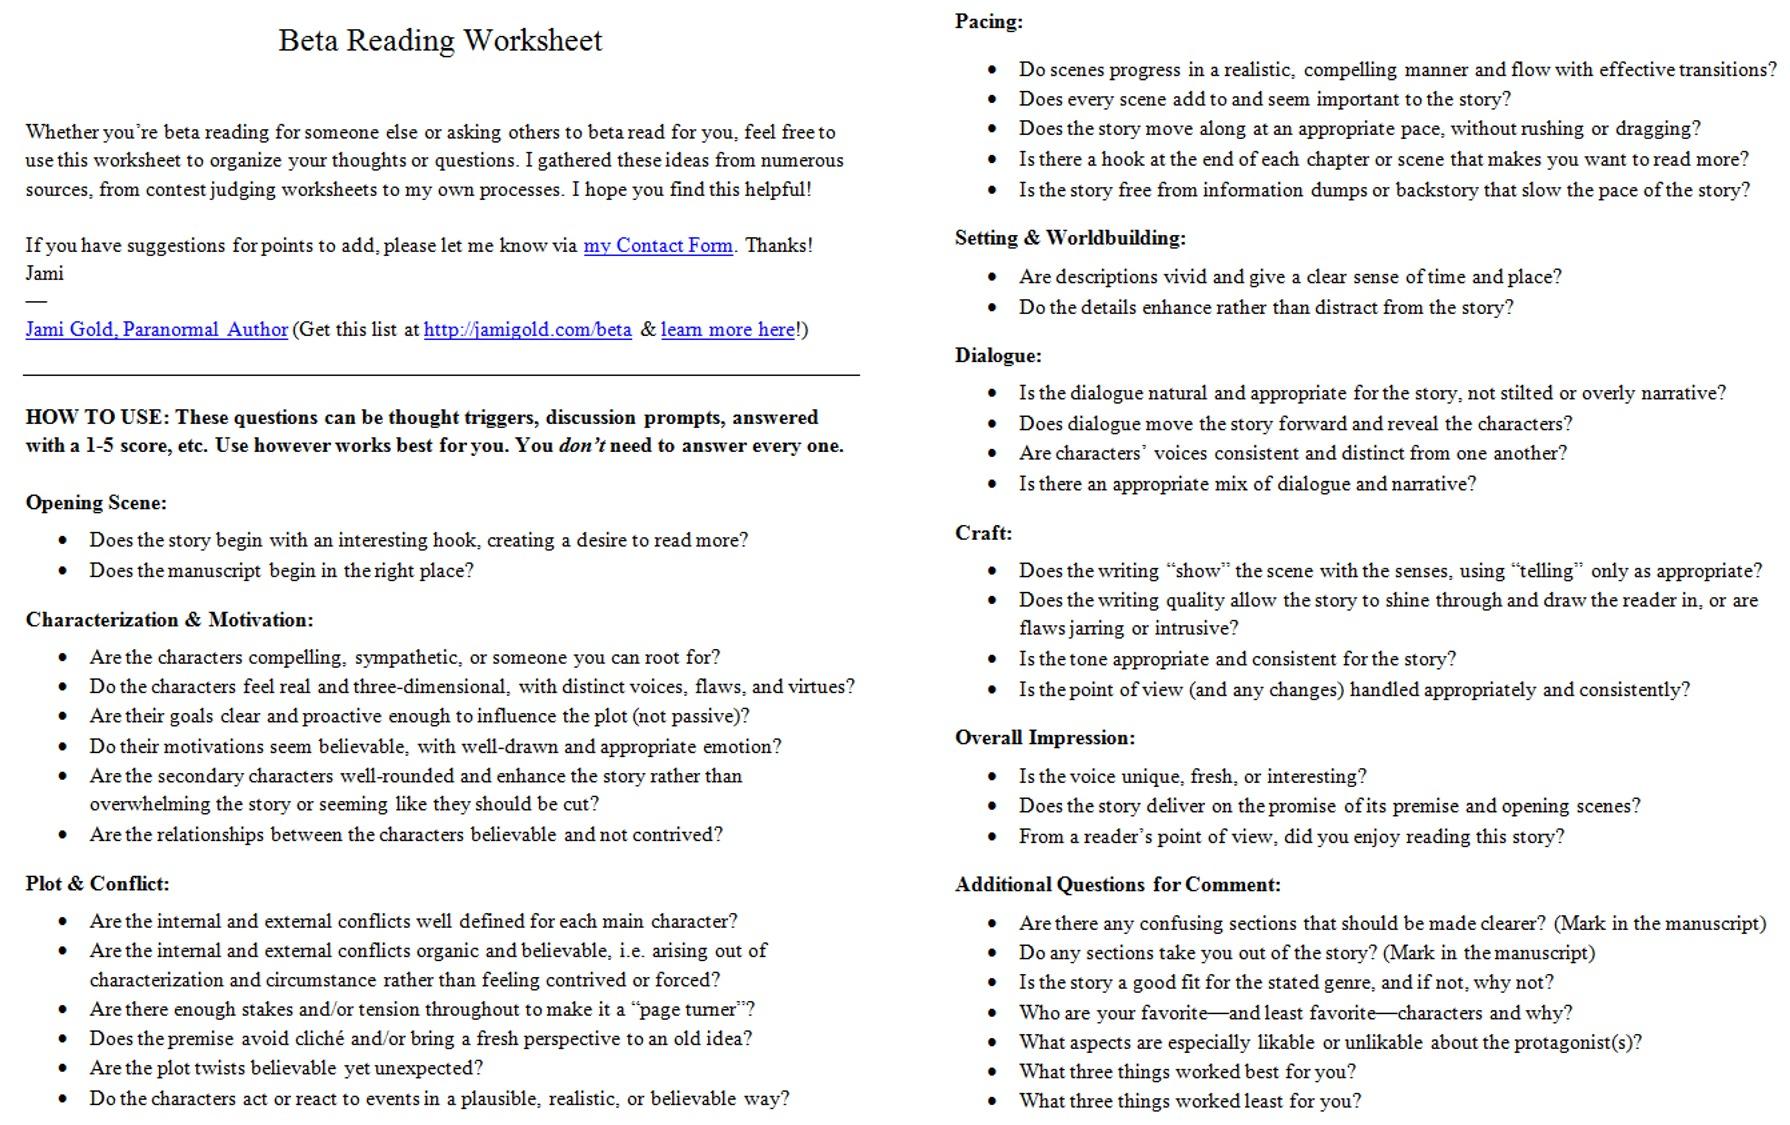 Weirdmailus  Picturesque Worksheets For Writers  Jami Gold Paranormal Author With Exquisite Screen Shot Of The Twopage Beta Reading Worksheet With Awesome Estimating Money Worksheets Also Sequence Worksheets St Grade In Addition Estimating Decimals Worksheet And Superlative Adjective Worksheet As Well As Capitalization Proper Nouns Worksheet Additionally Related Rates Worksheets From Jamigoldcom With Weirdmailus  Exquisite Worksheets For Writers  Jami Gold Paranormal Author With Awesome Screen Shot Of The Twopage Beta Reading Worksheet And Picturesque Estimating Money Worksheets Also Sequence Worksheets St Grade In Addition Estimating Decimals Worksheet From Jamigoldcom